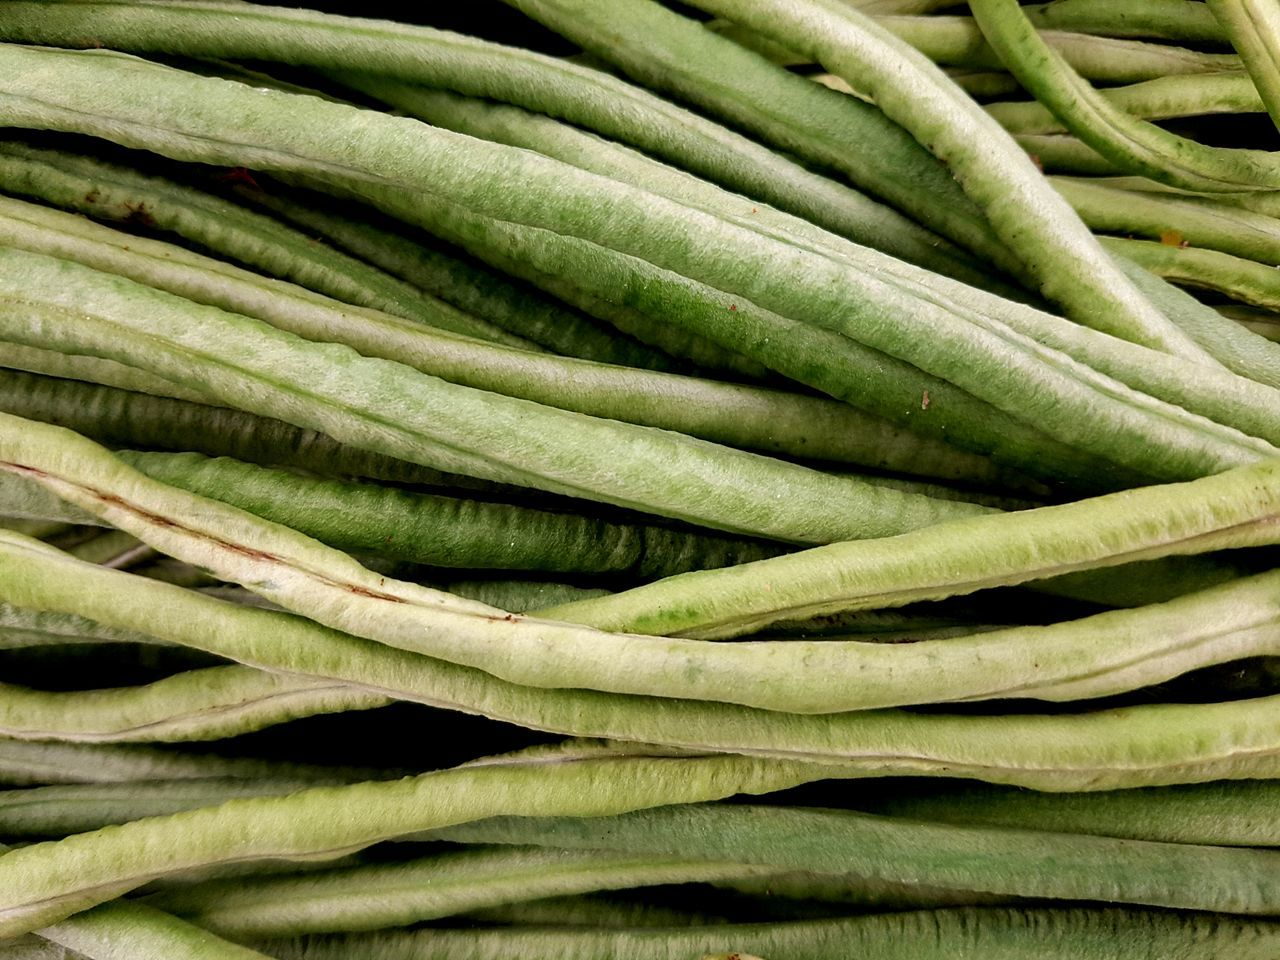 Green Color Full Frame Vegetable Healthy Eating Freshness Abundance Backgrounds Food Close-up Agronomy Agriculture Agricultural Plants Still Life Nature Longbeans